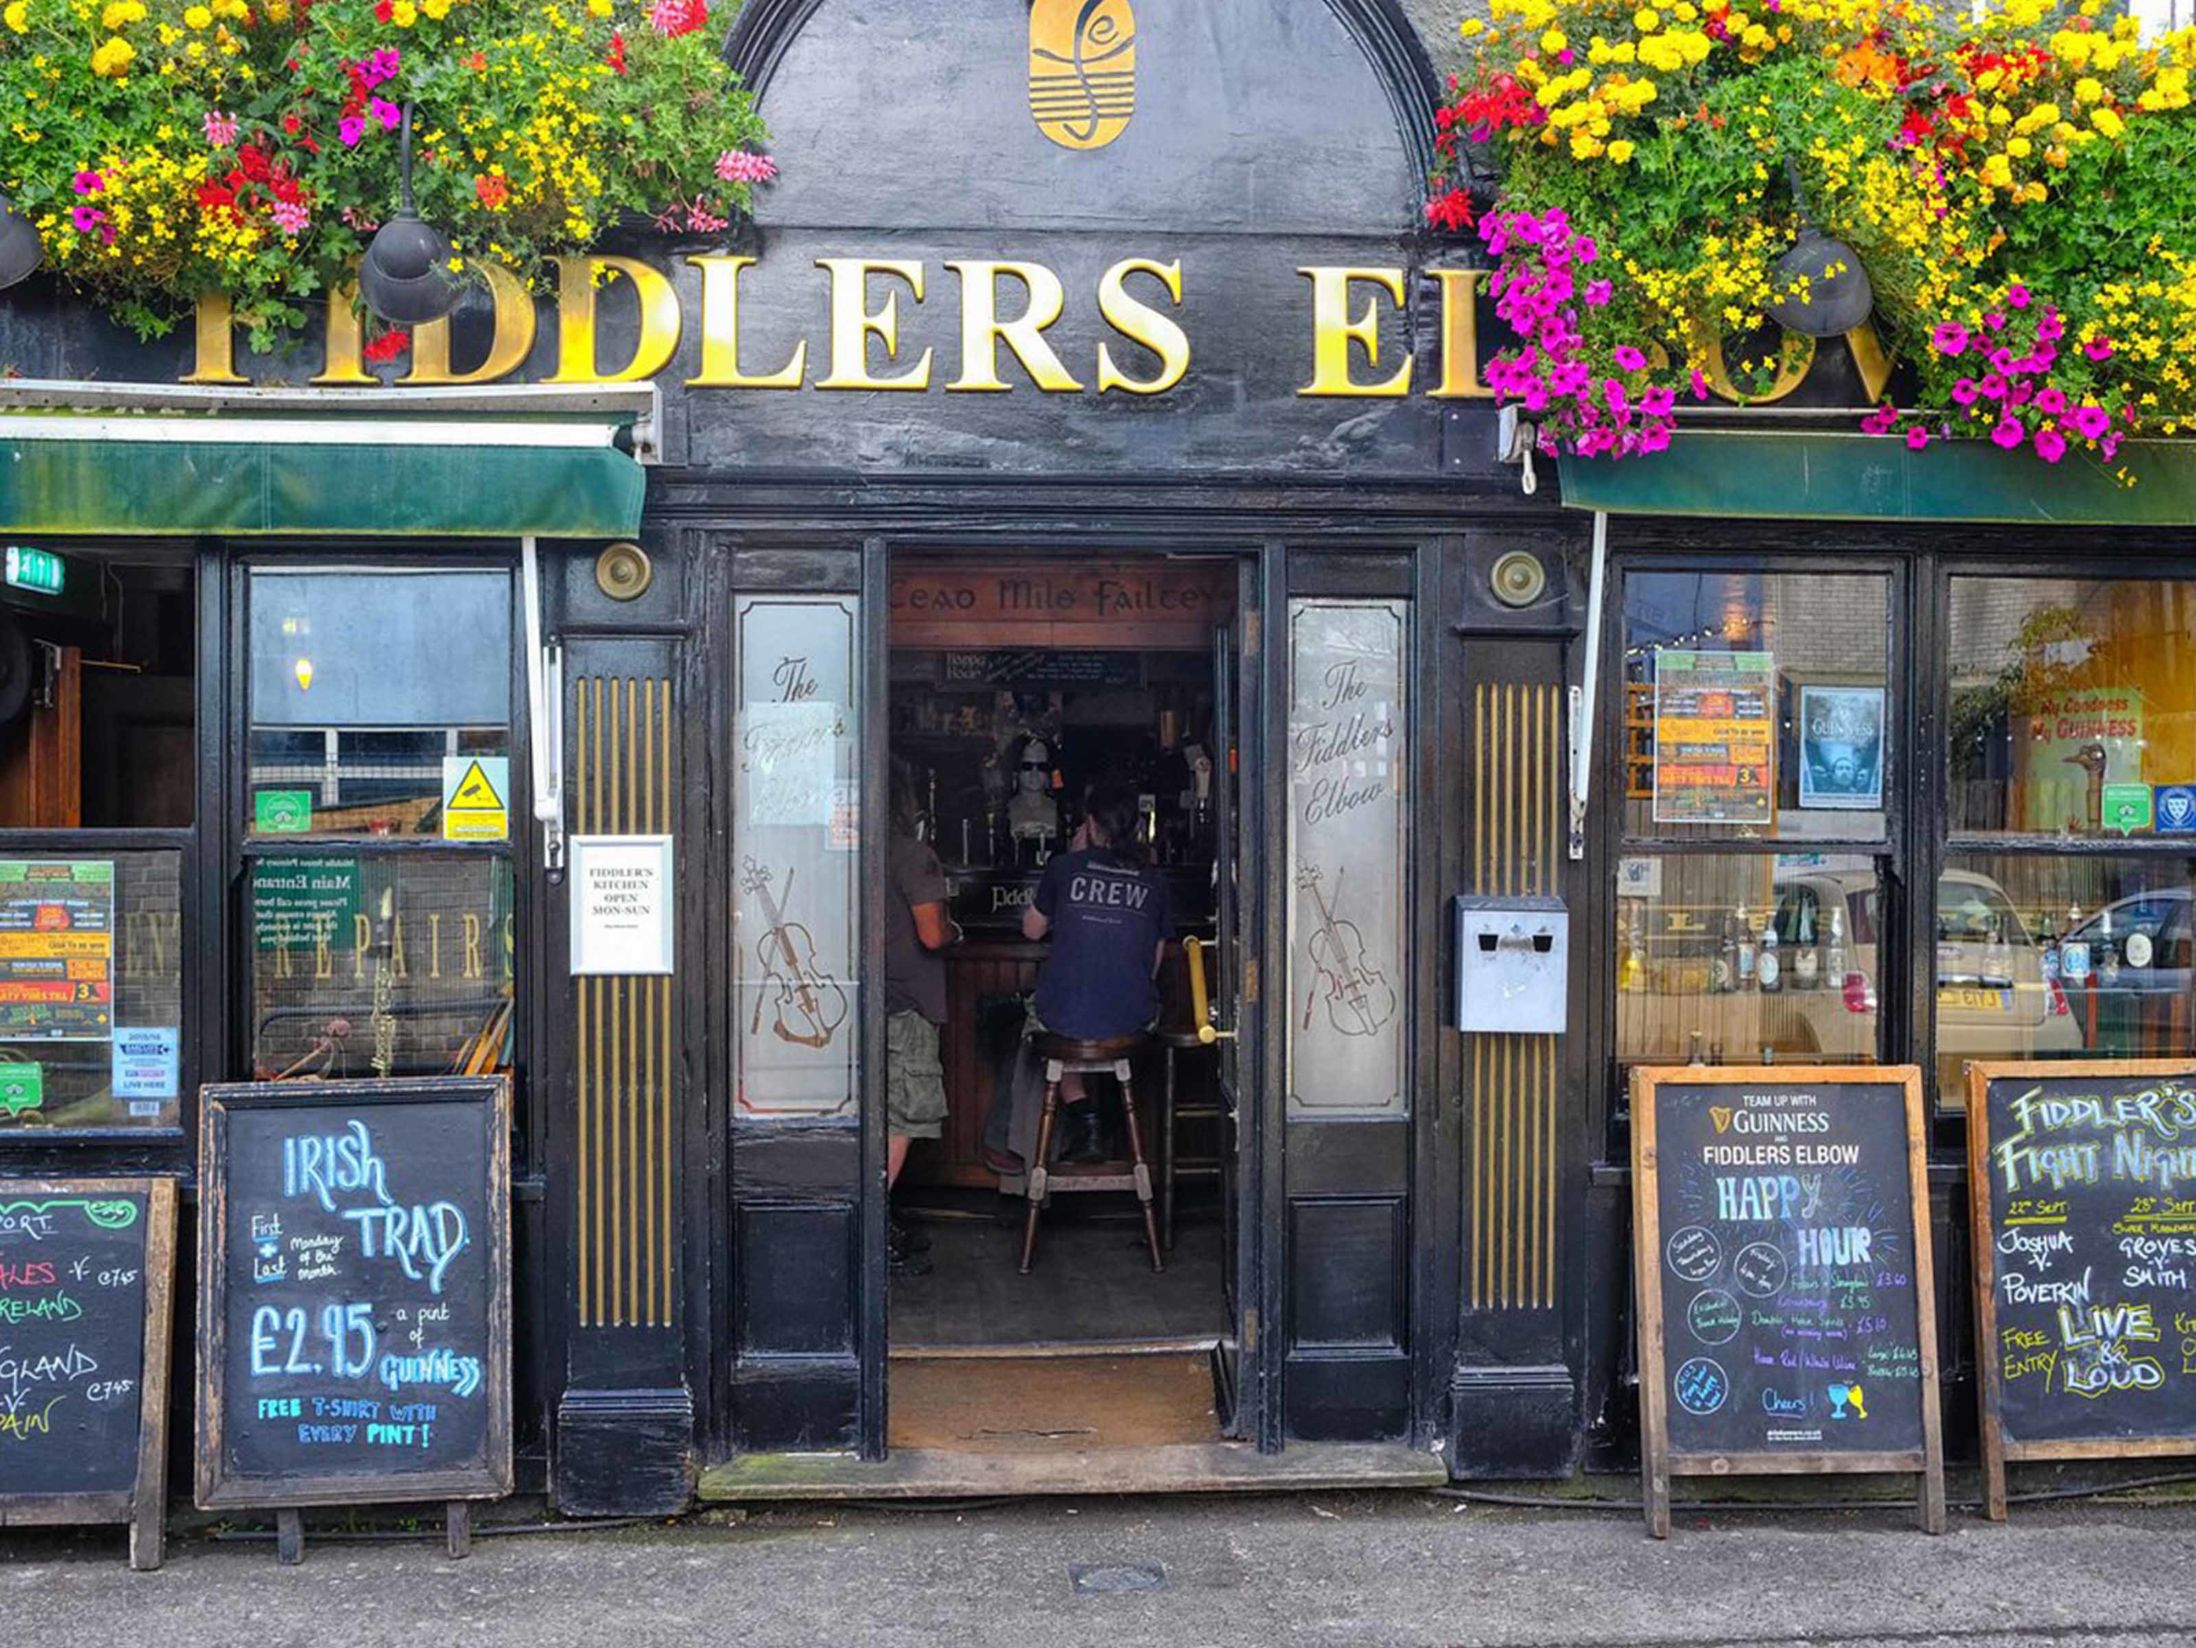 Best Pubs in Brighton - The Fiddlers Elbow